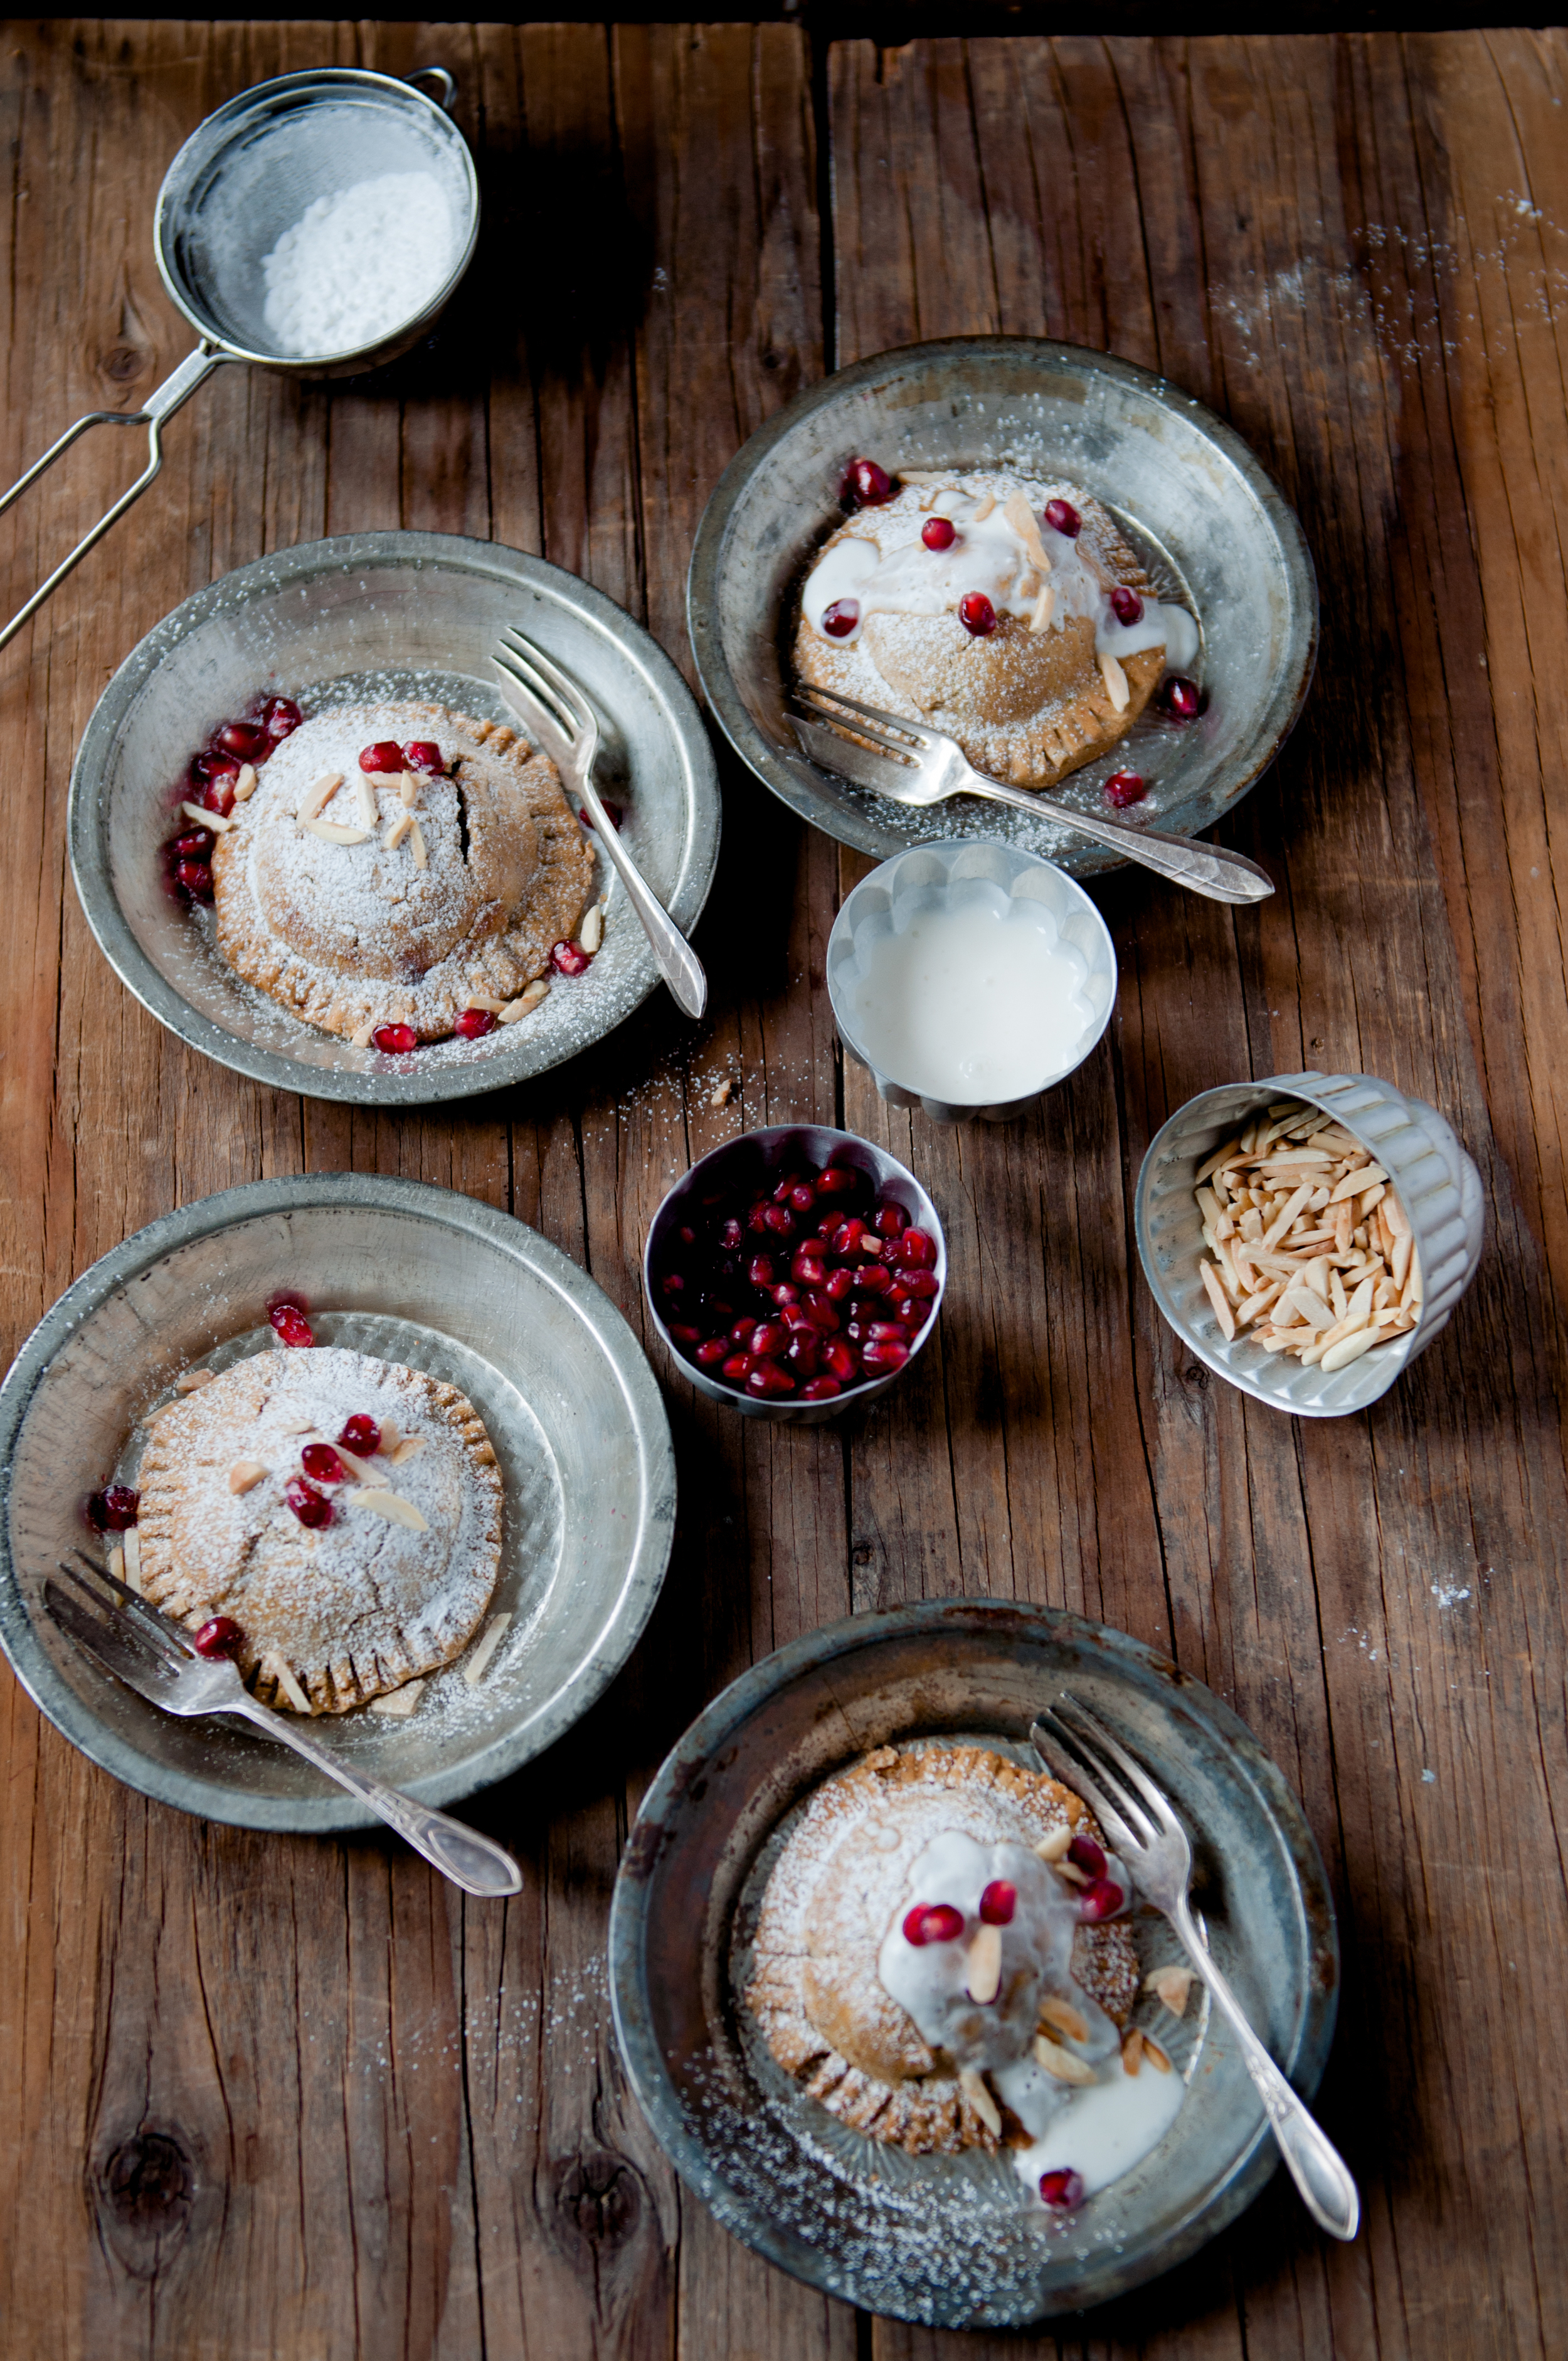 Gluten Free pockets with raw sugarand cardamom roasted Asian pears finished with sweetened yogurt and pomegranate.